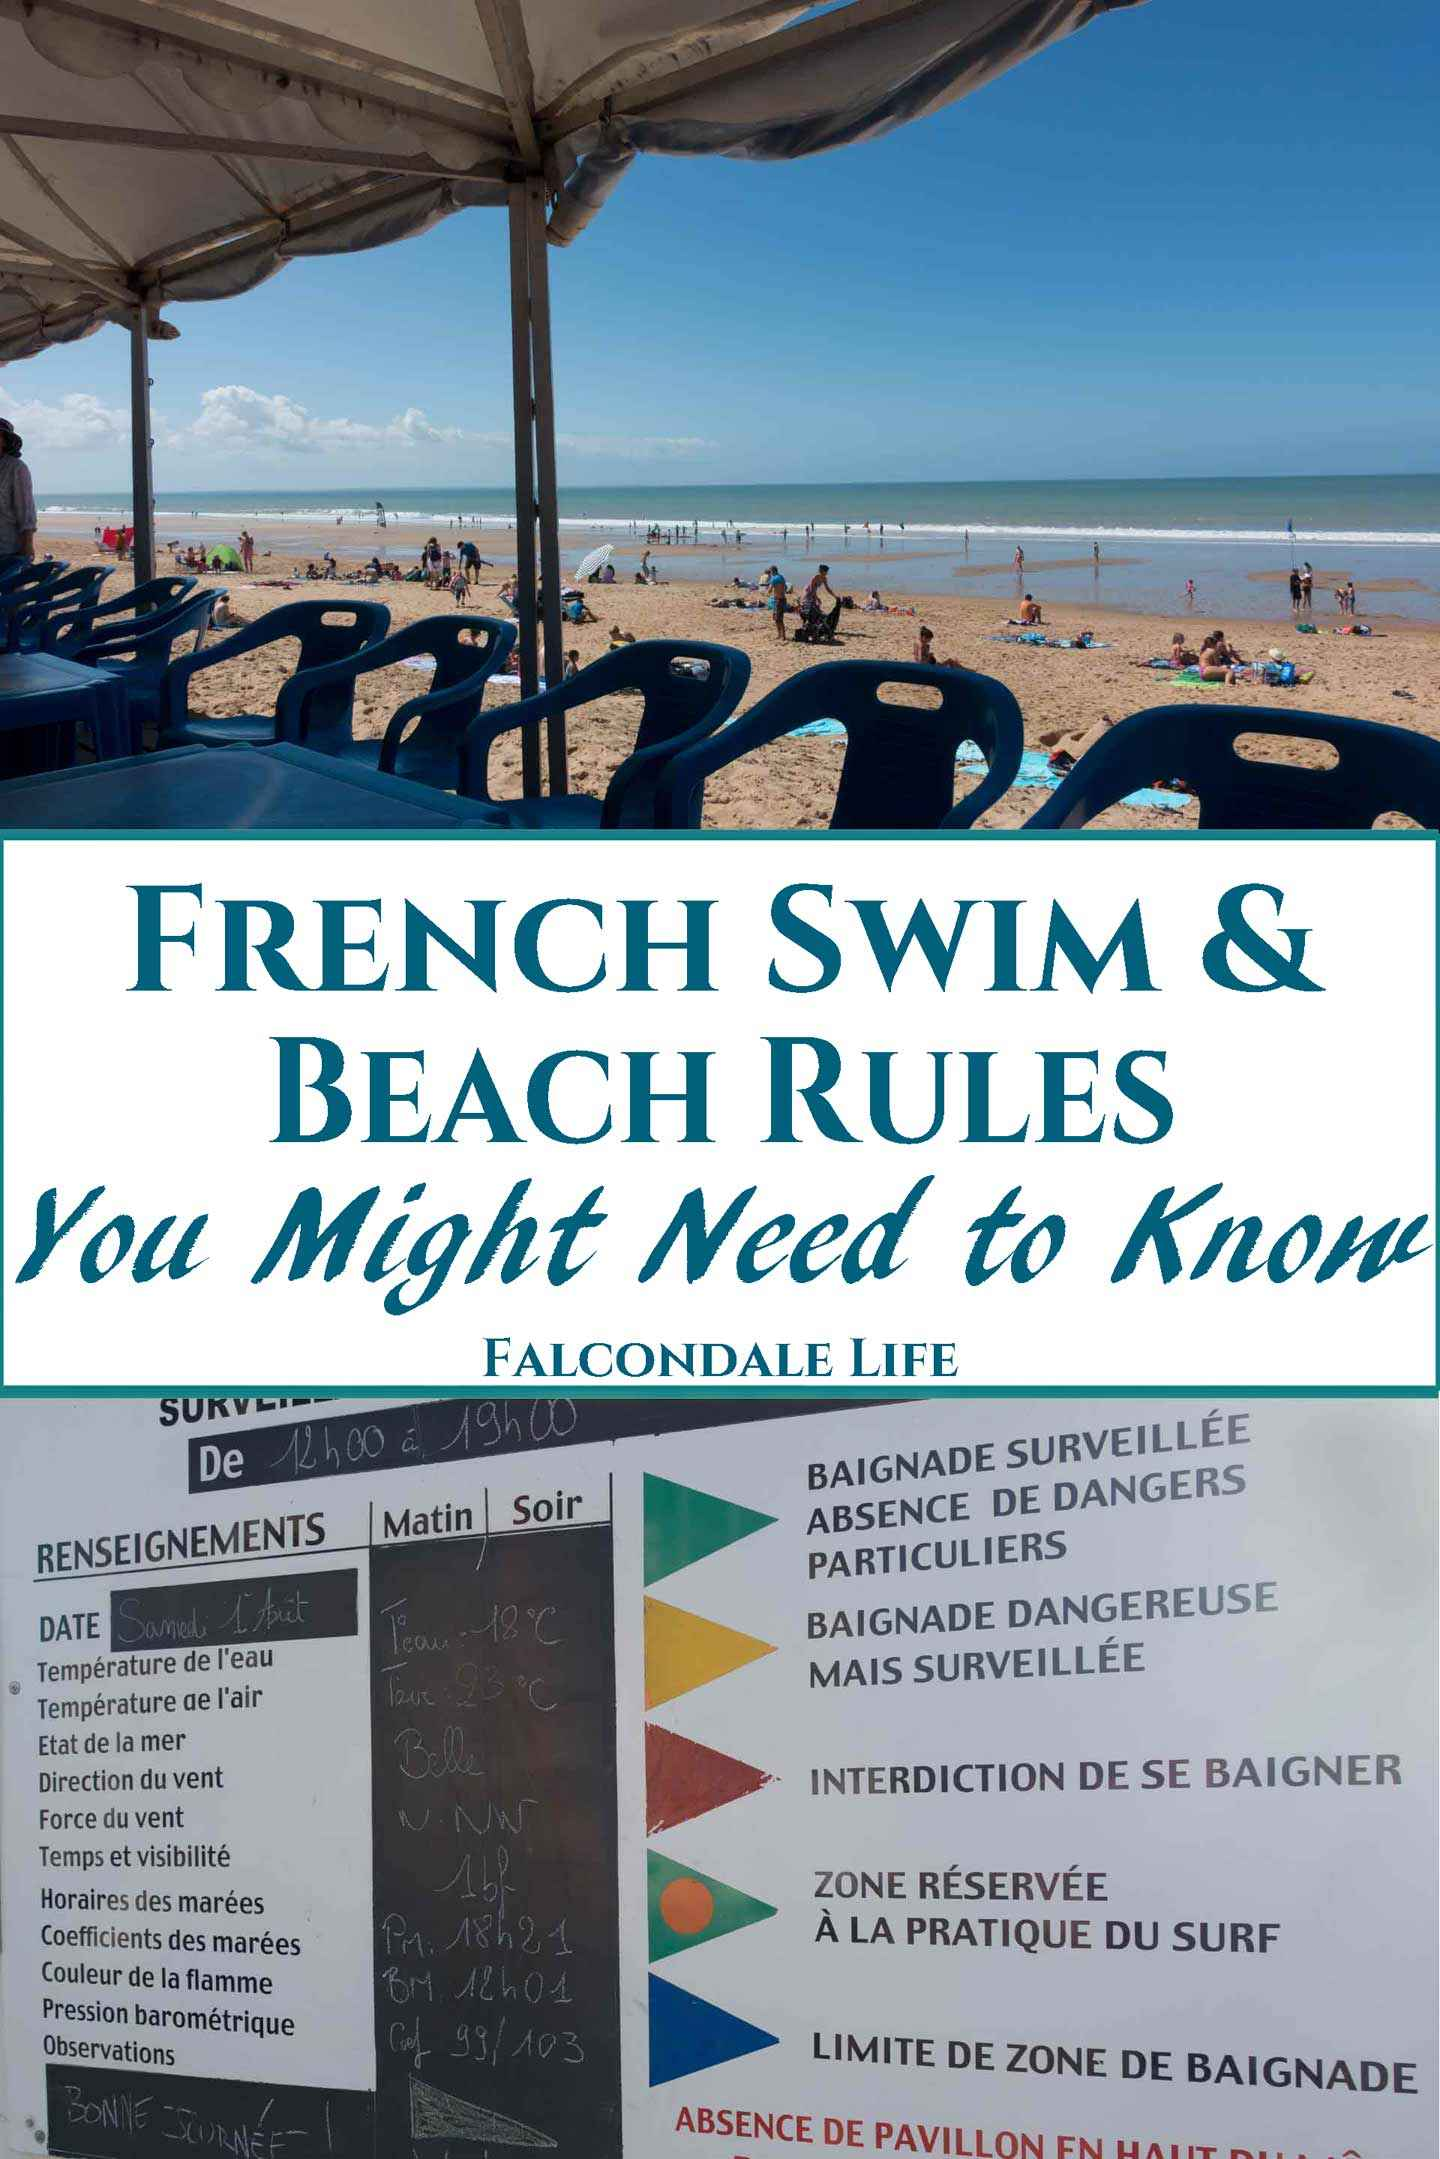 Do men have to wear speedos to swim in France? Can we light a barbecue on the beach or walk a dog? Find out - French Swim and Beach Rules - what you might need to know on Falcondale Life blog. Some rules may surprise you but in France there is a good lifeguard service. Laws are set both nationally and locally. At swimming pools there are commonly some rules about swimwear and suncream. Image description: Beach with display board showing rules in French.